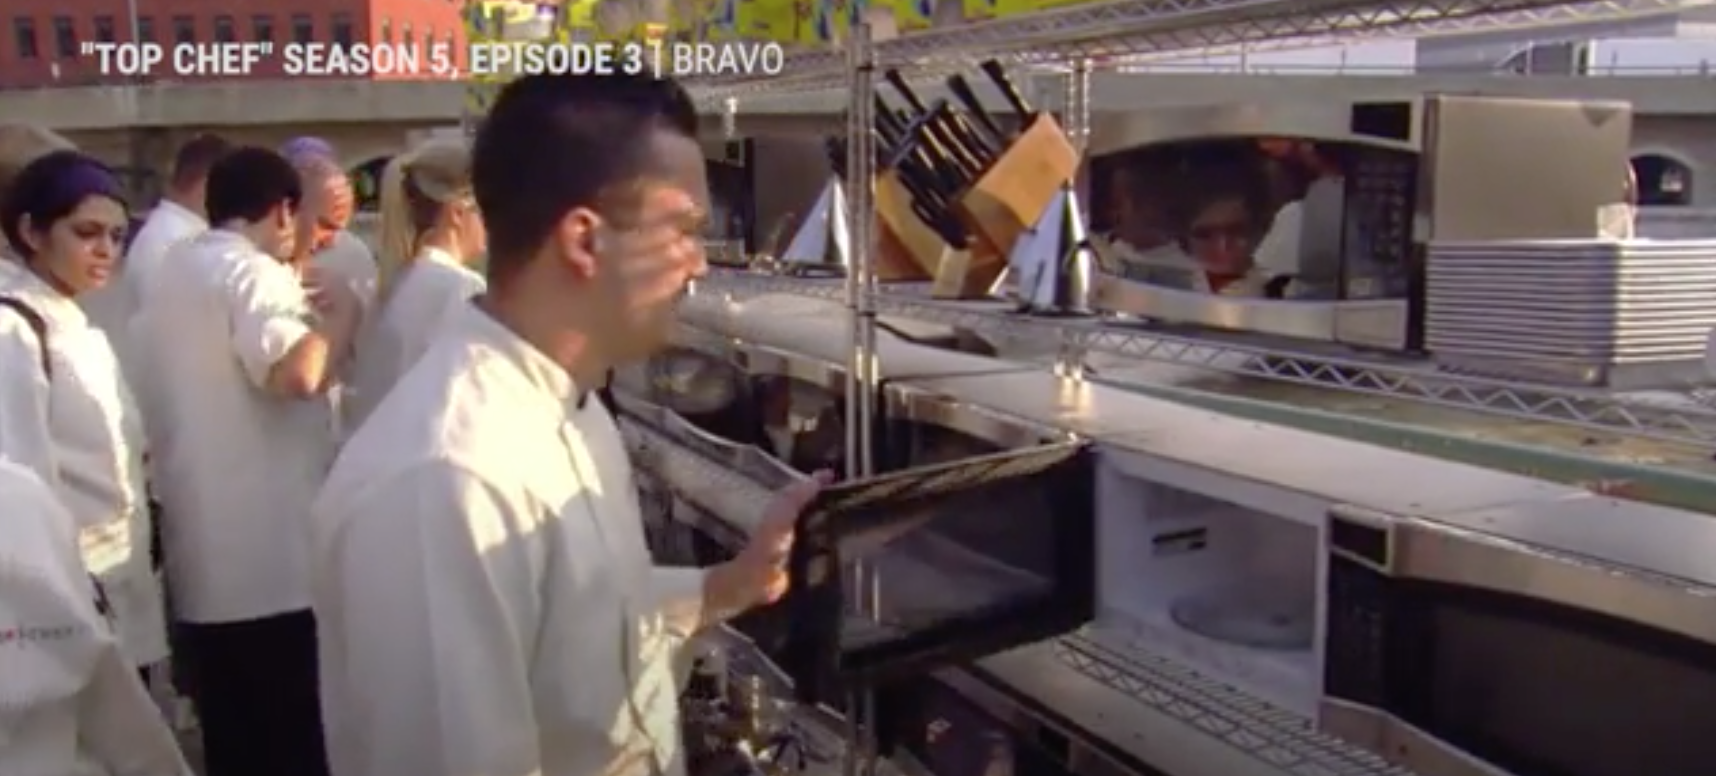 Fabio descusses most difficult challenge from Top Chef